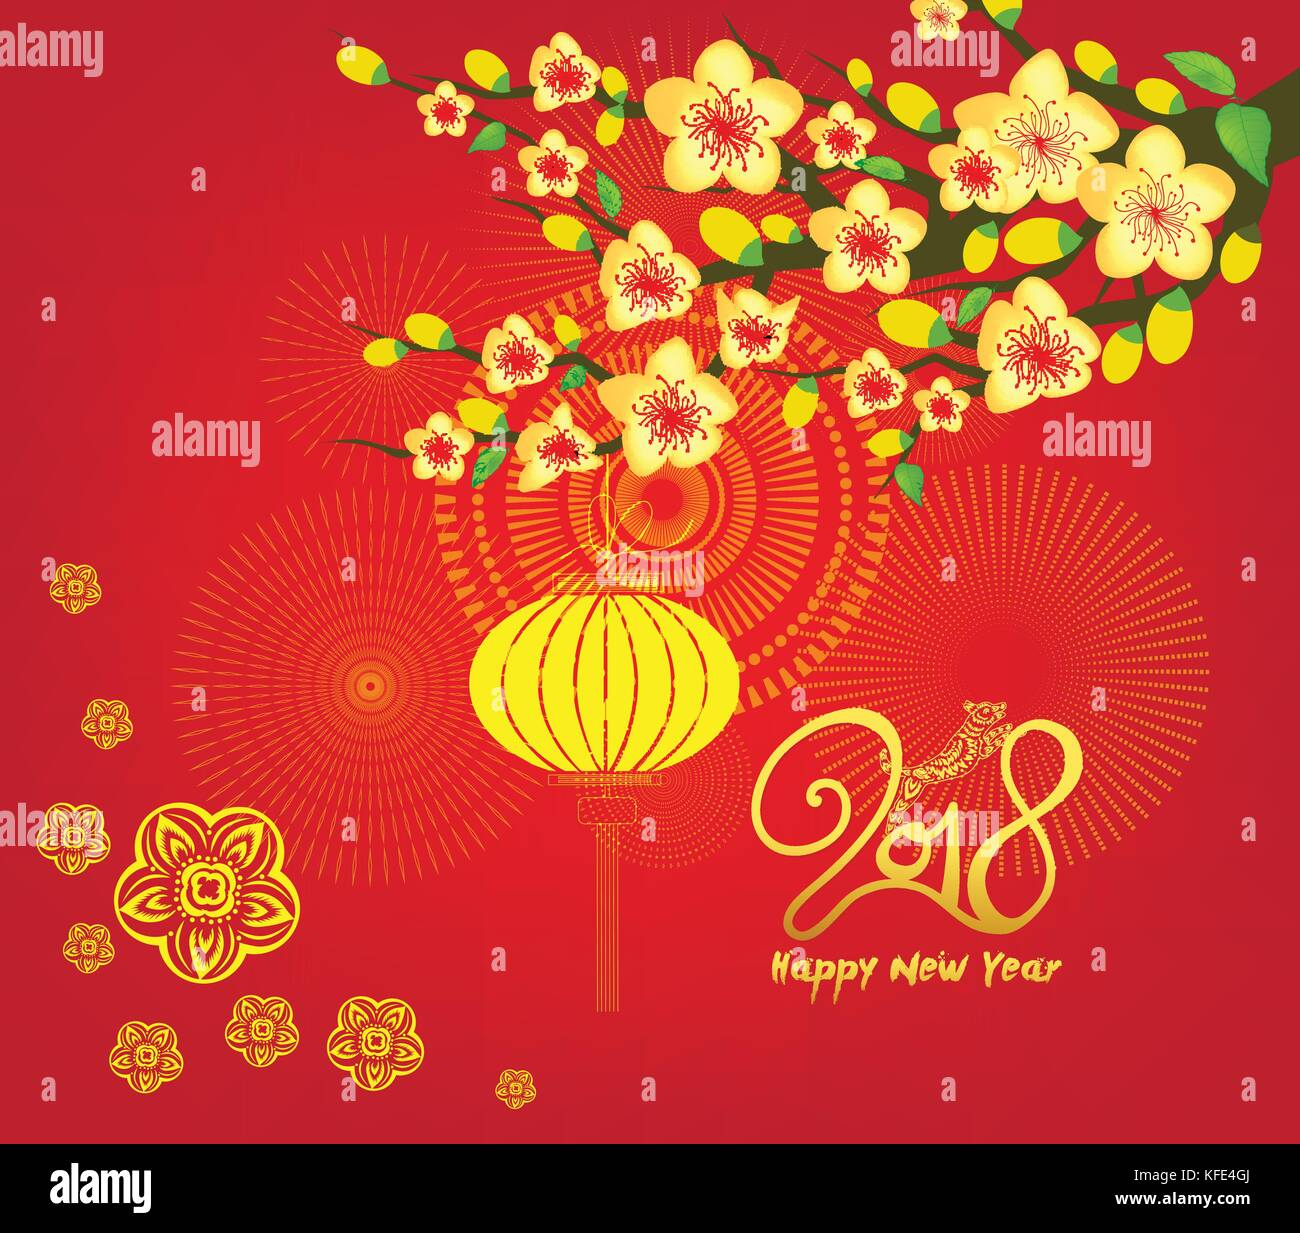 happy new year 2018 greeting card and chinese new year of the dog cherry blossom background